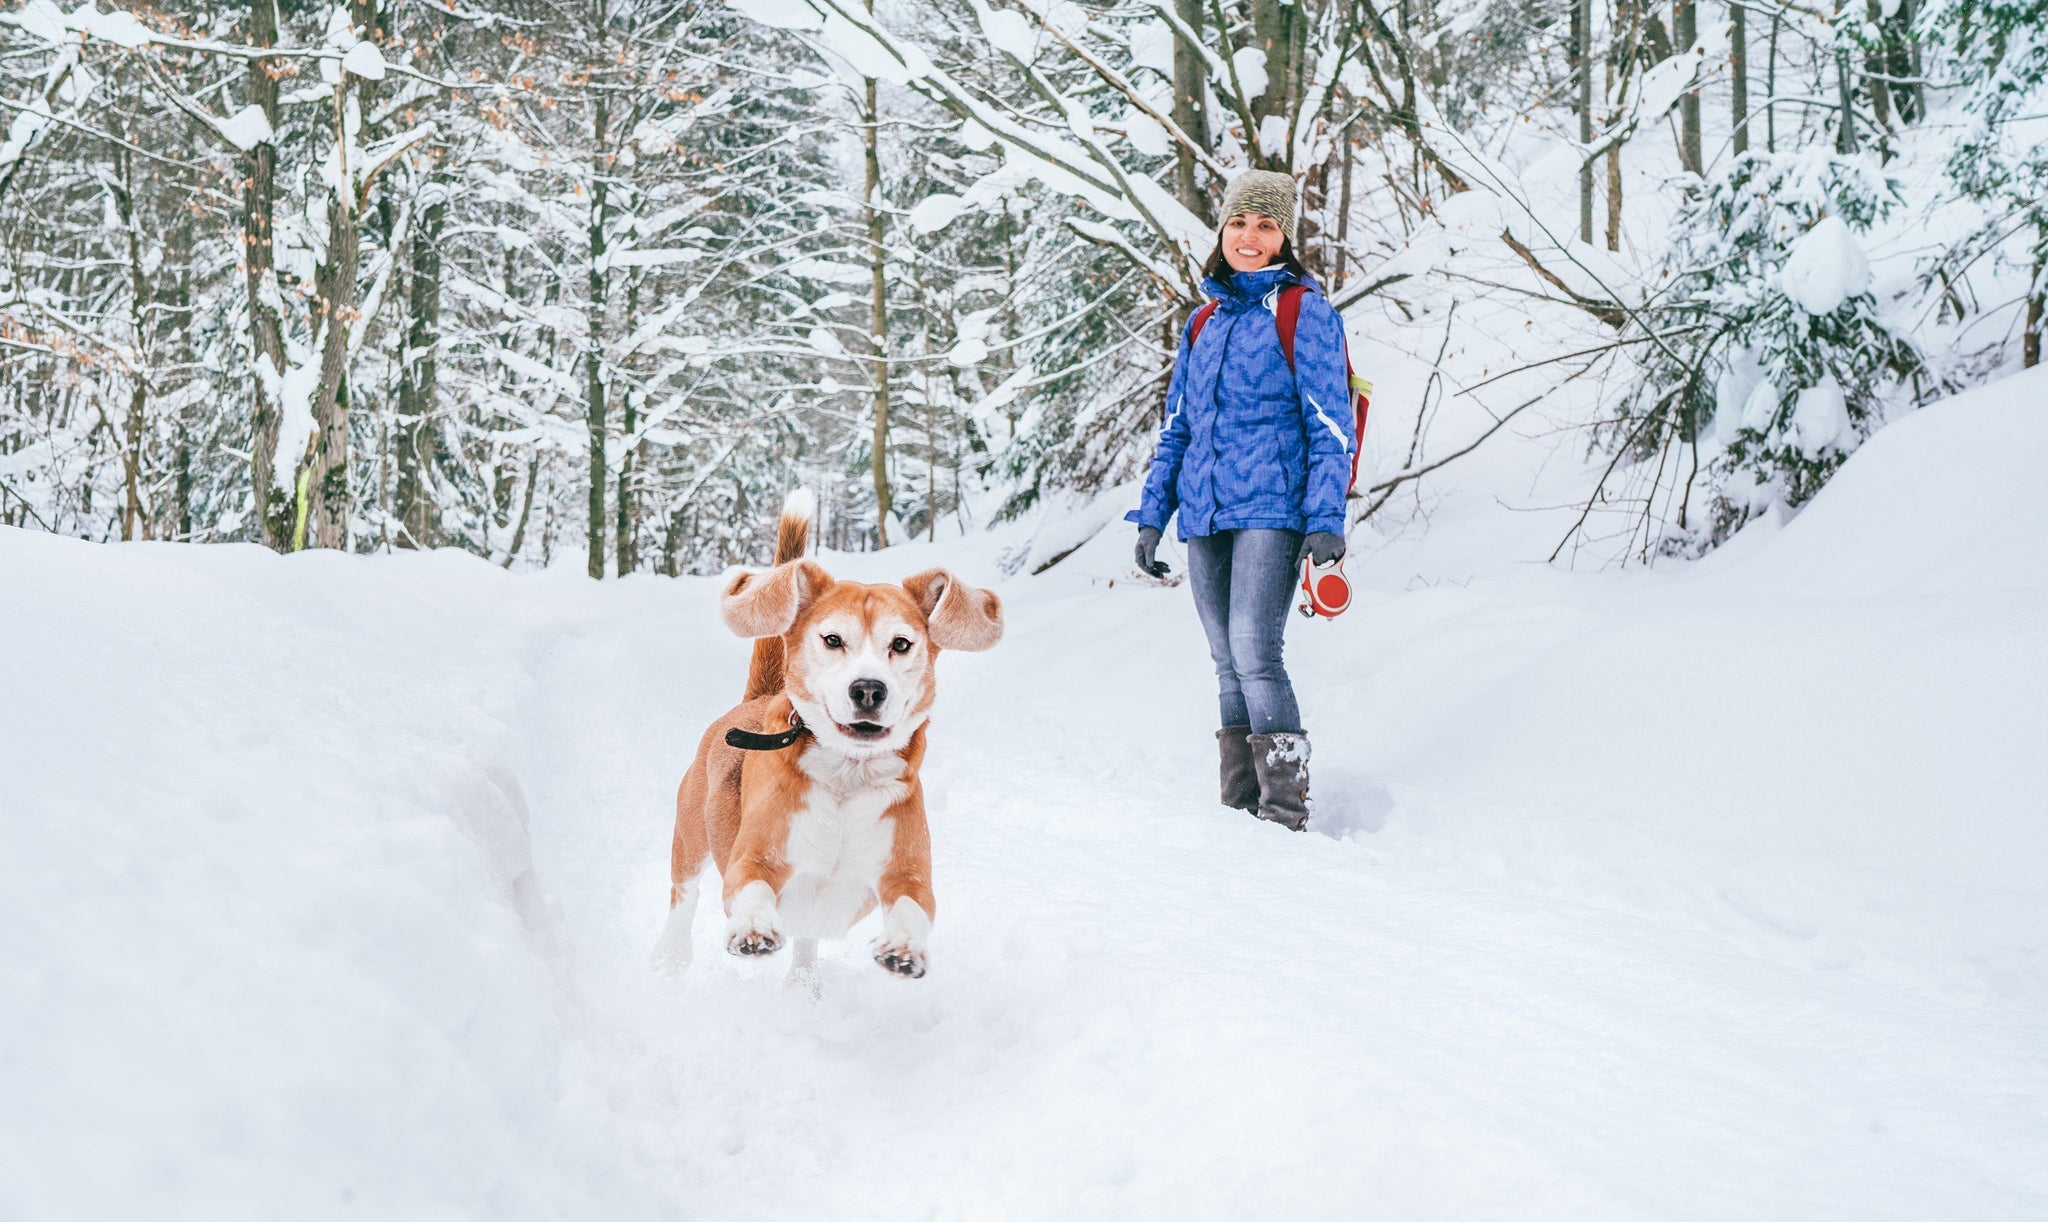 The Safest Winter Boots For Dog Walking On Ice & Snow